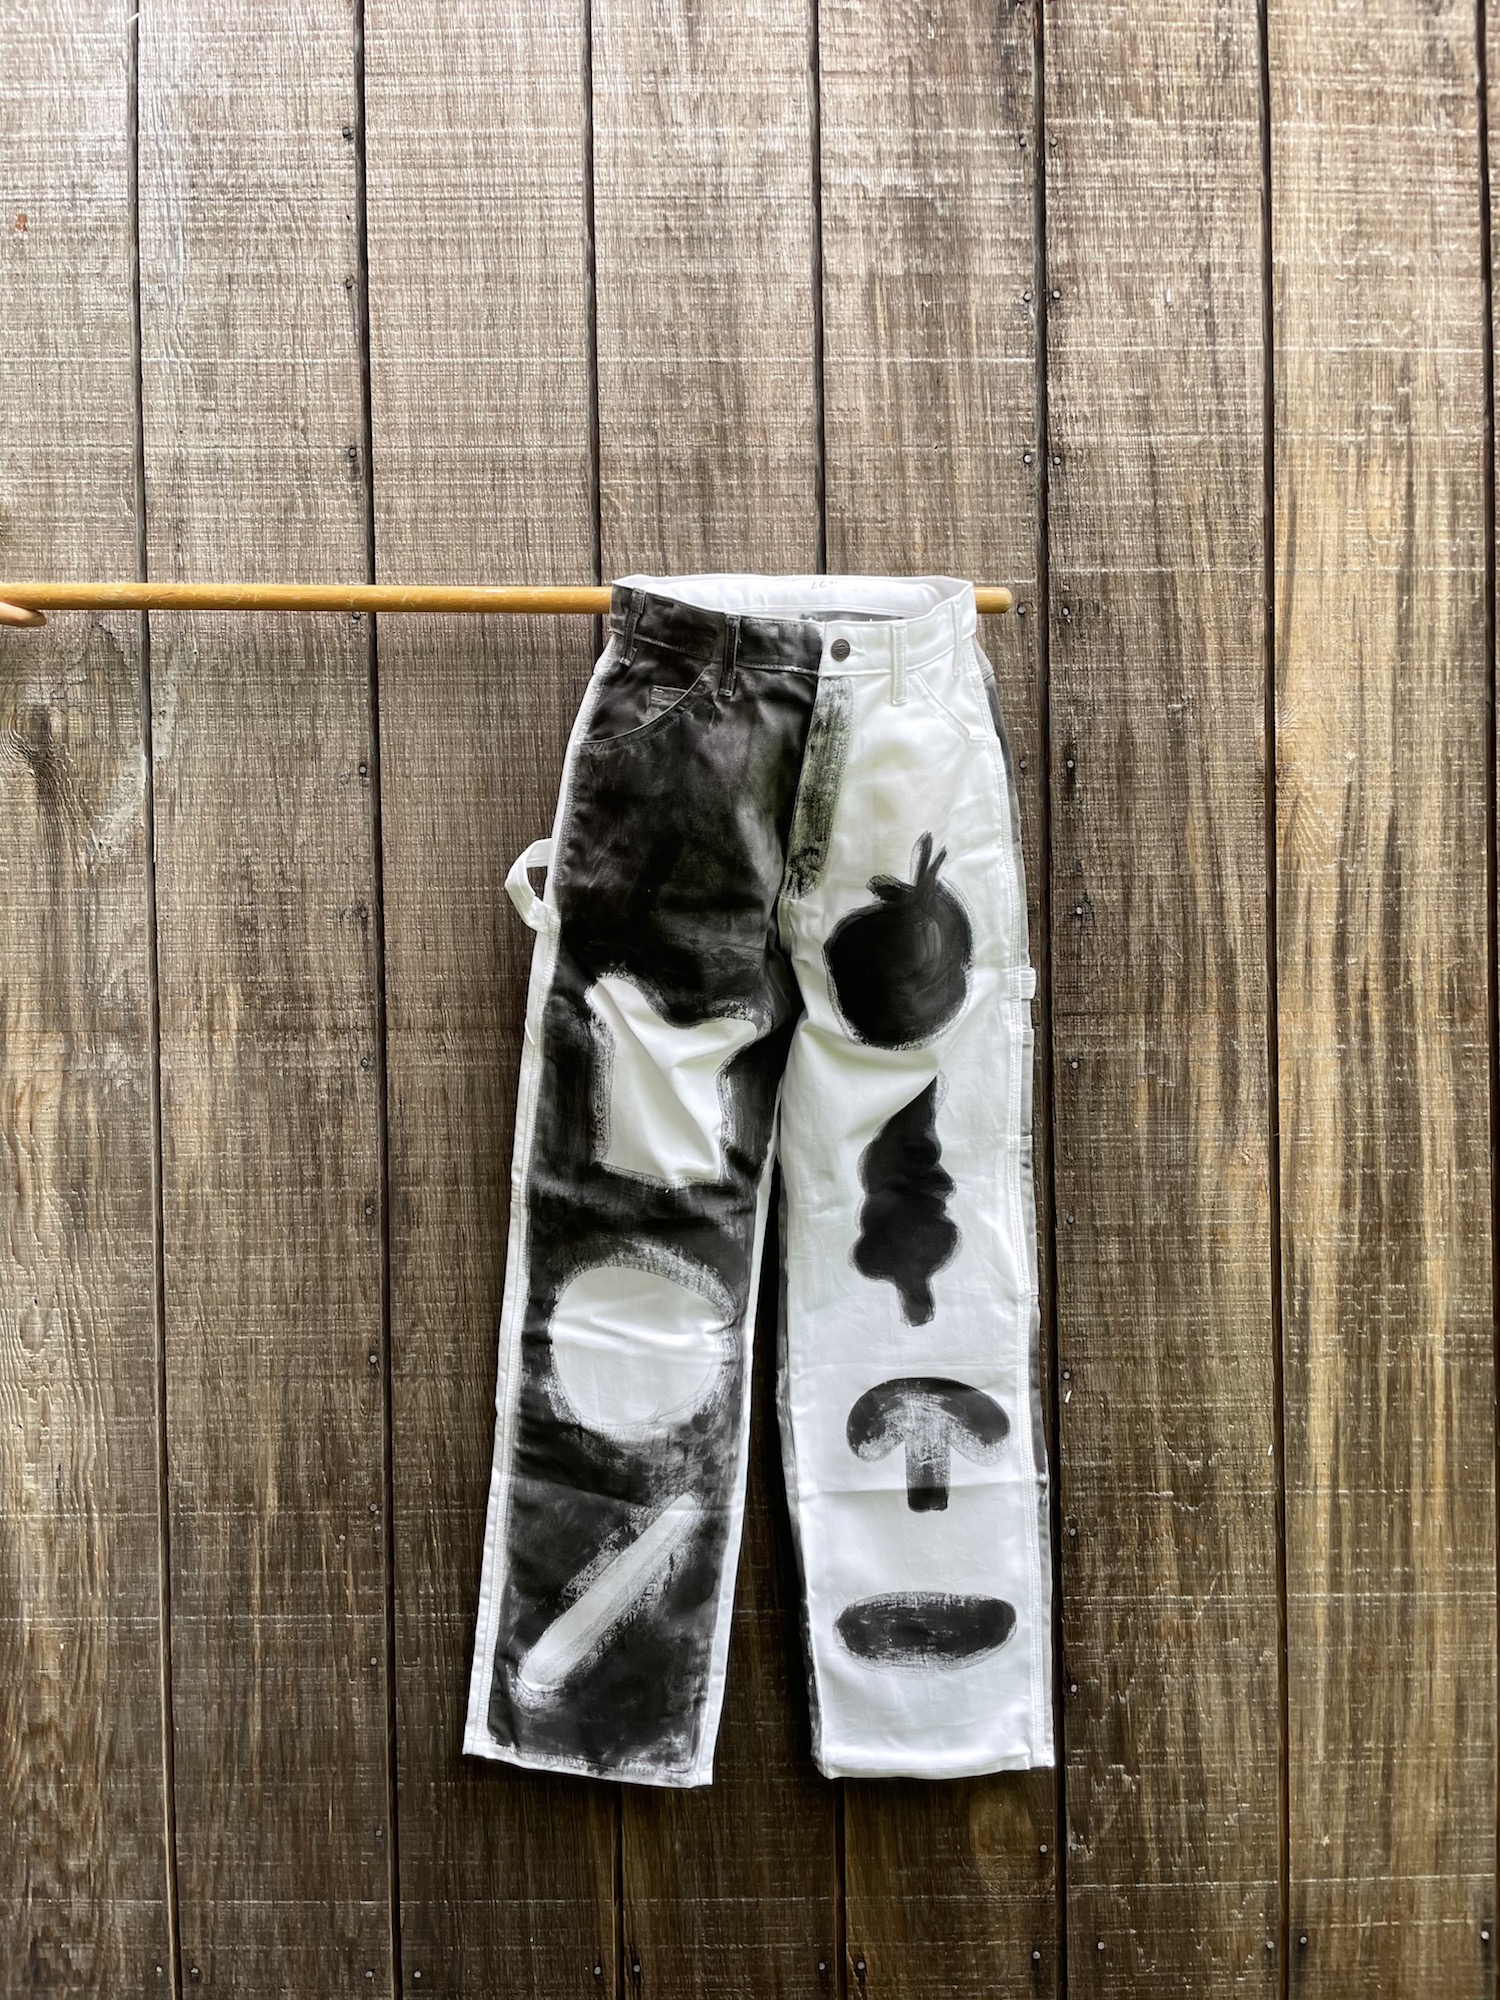 pants hanging on wooden pole against wood wall